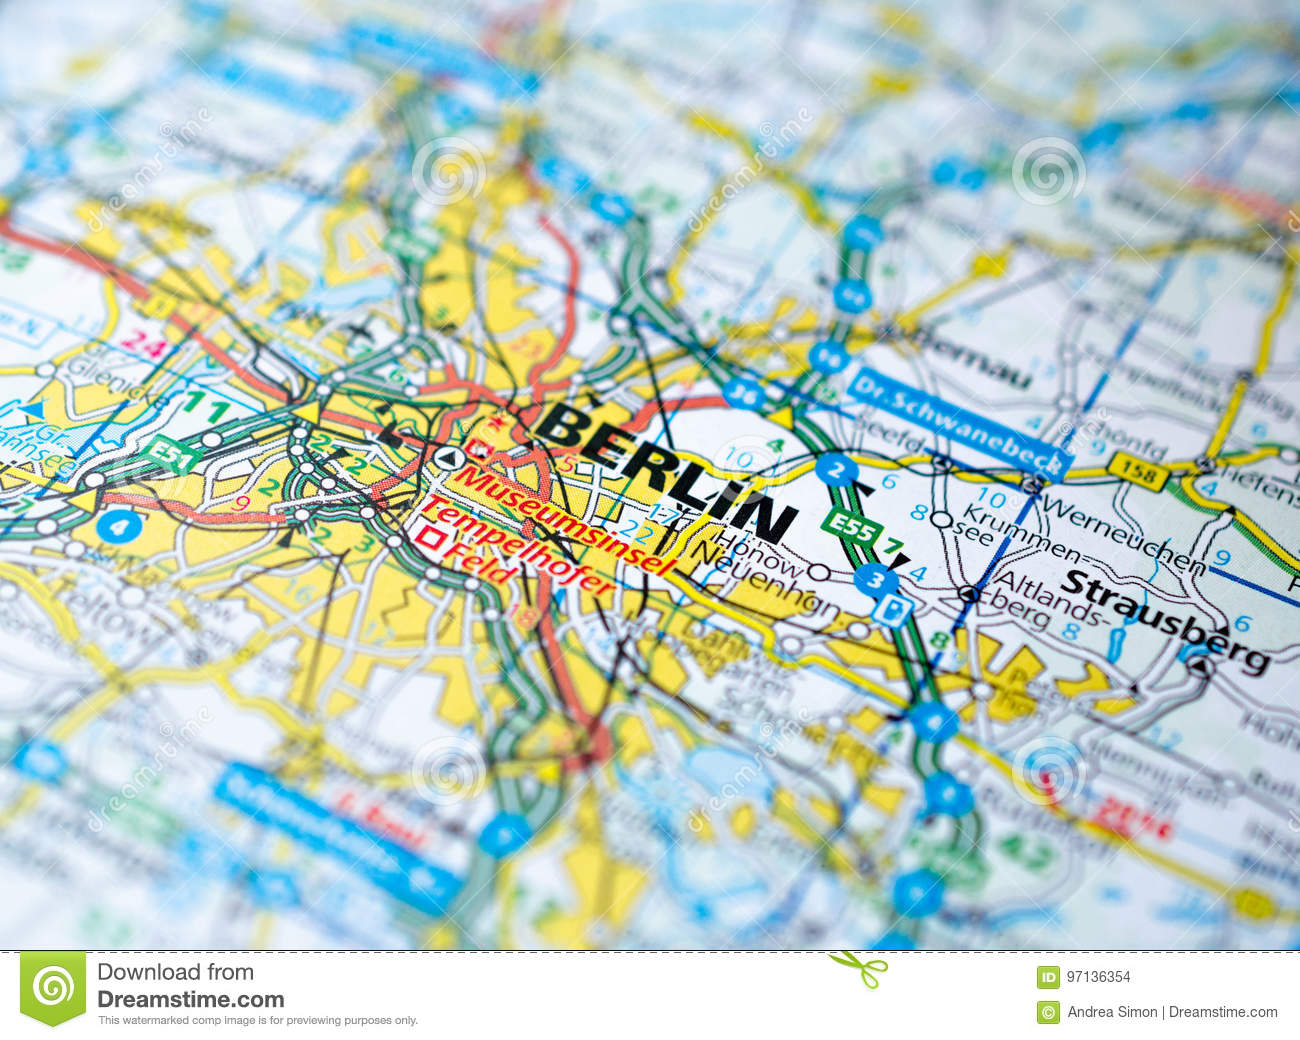 Berlin Germany World Map.Berlin On Map Stock Photo Image Of City Navigation 97136354